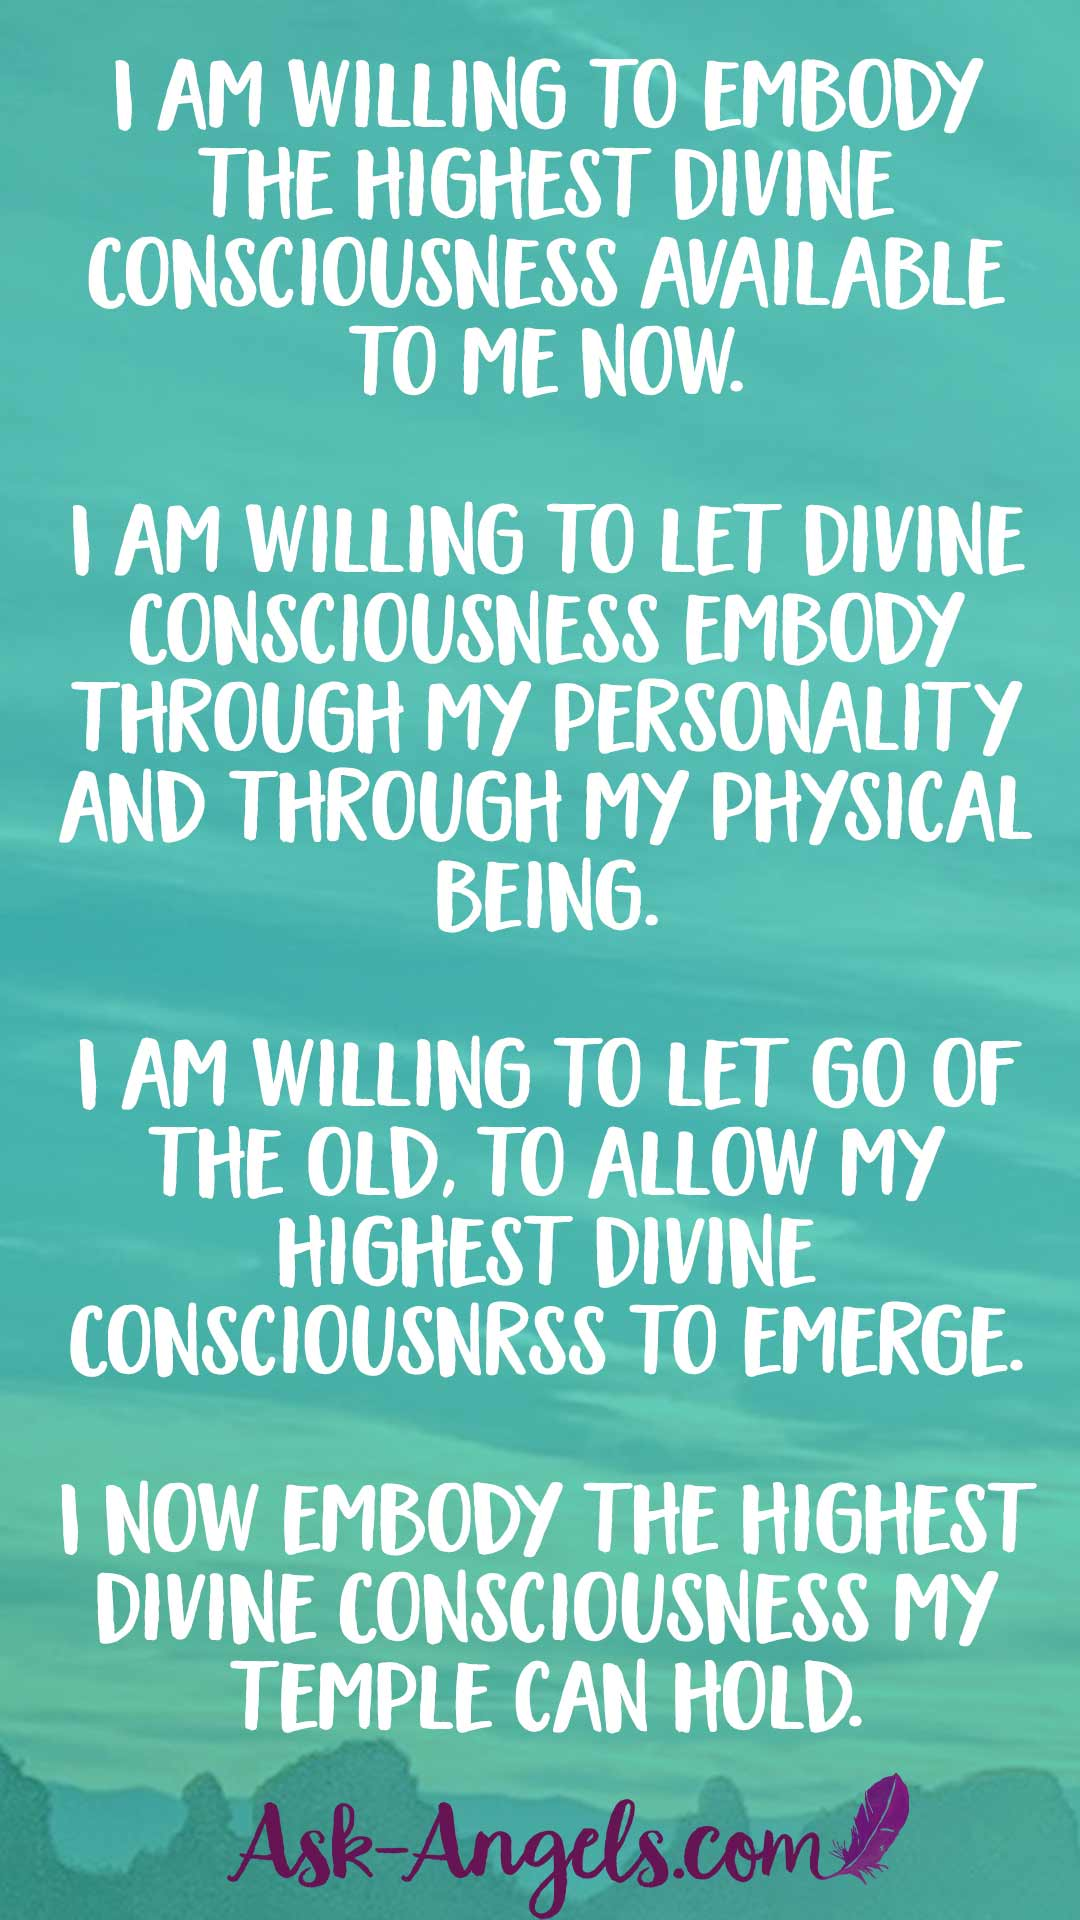 I am willing to embody the highest Divine Consciousness available to me now. I am willing to let Divine Consciousness embody through my personality and through my physical being. I am willing to let fo of the old, to allow my highest Divine Consicousnss to emerge. I now embody the highest Divine Consciousness my temple can hold.